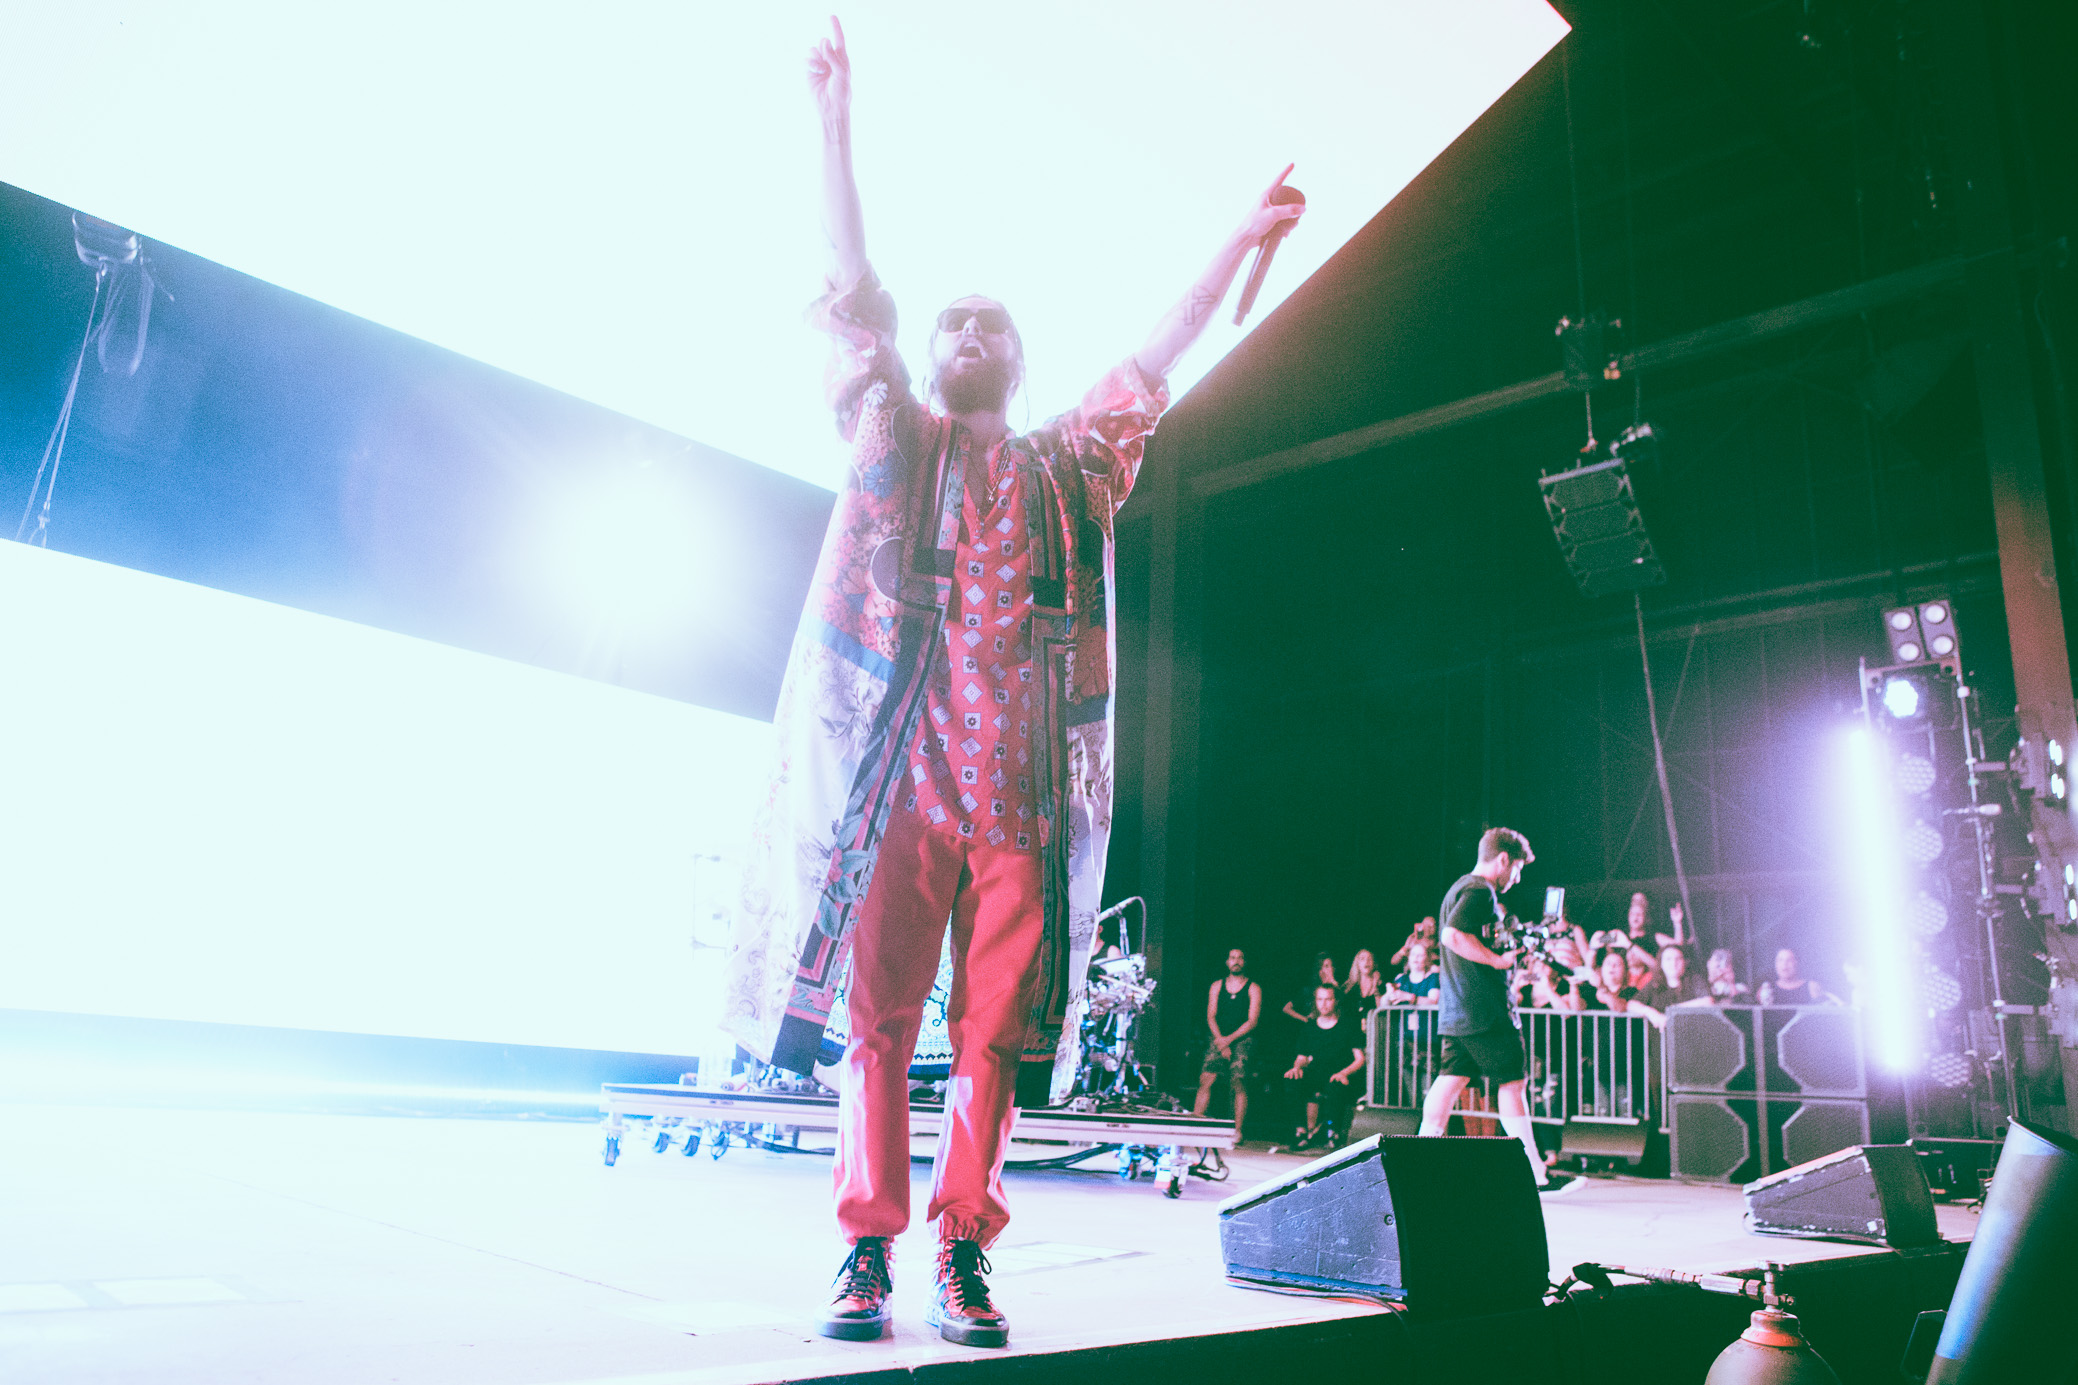 Jared Leto of Thirty Seconds to Mars performs in concert at the Oak Mountain Amphitheatre in Pelham, Alabama on July 3rd, 2018. (Photo by David A. Smith/DSmithScenes)